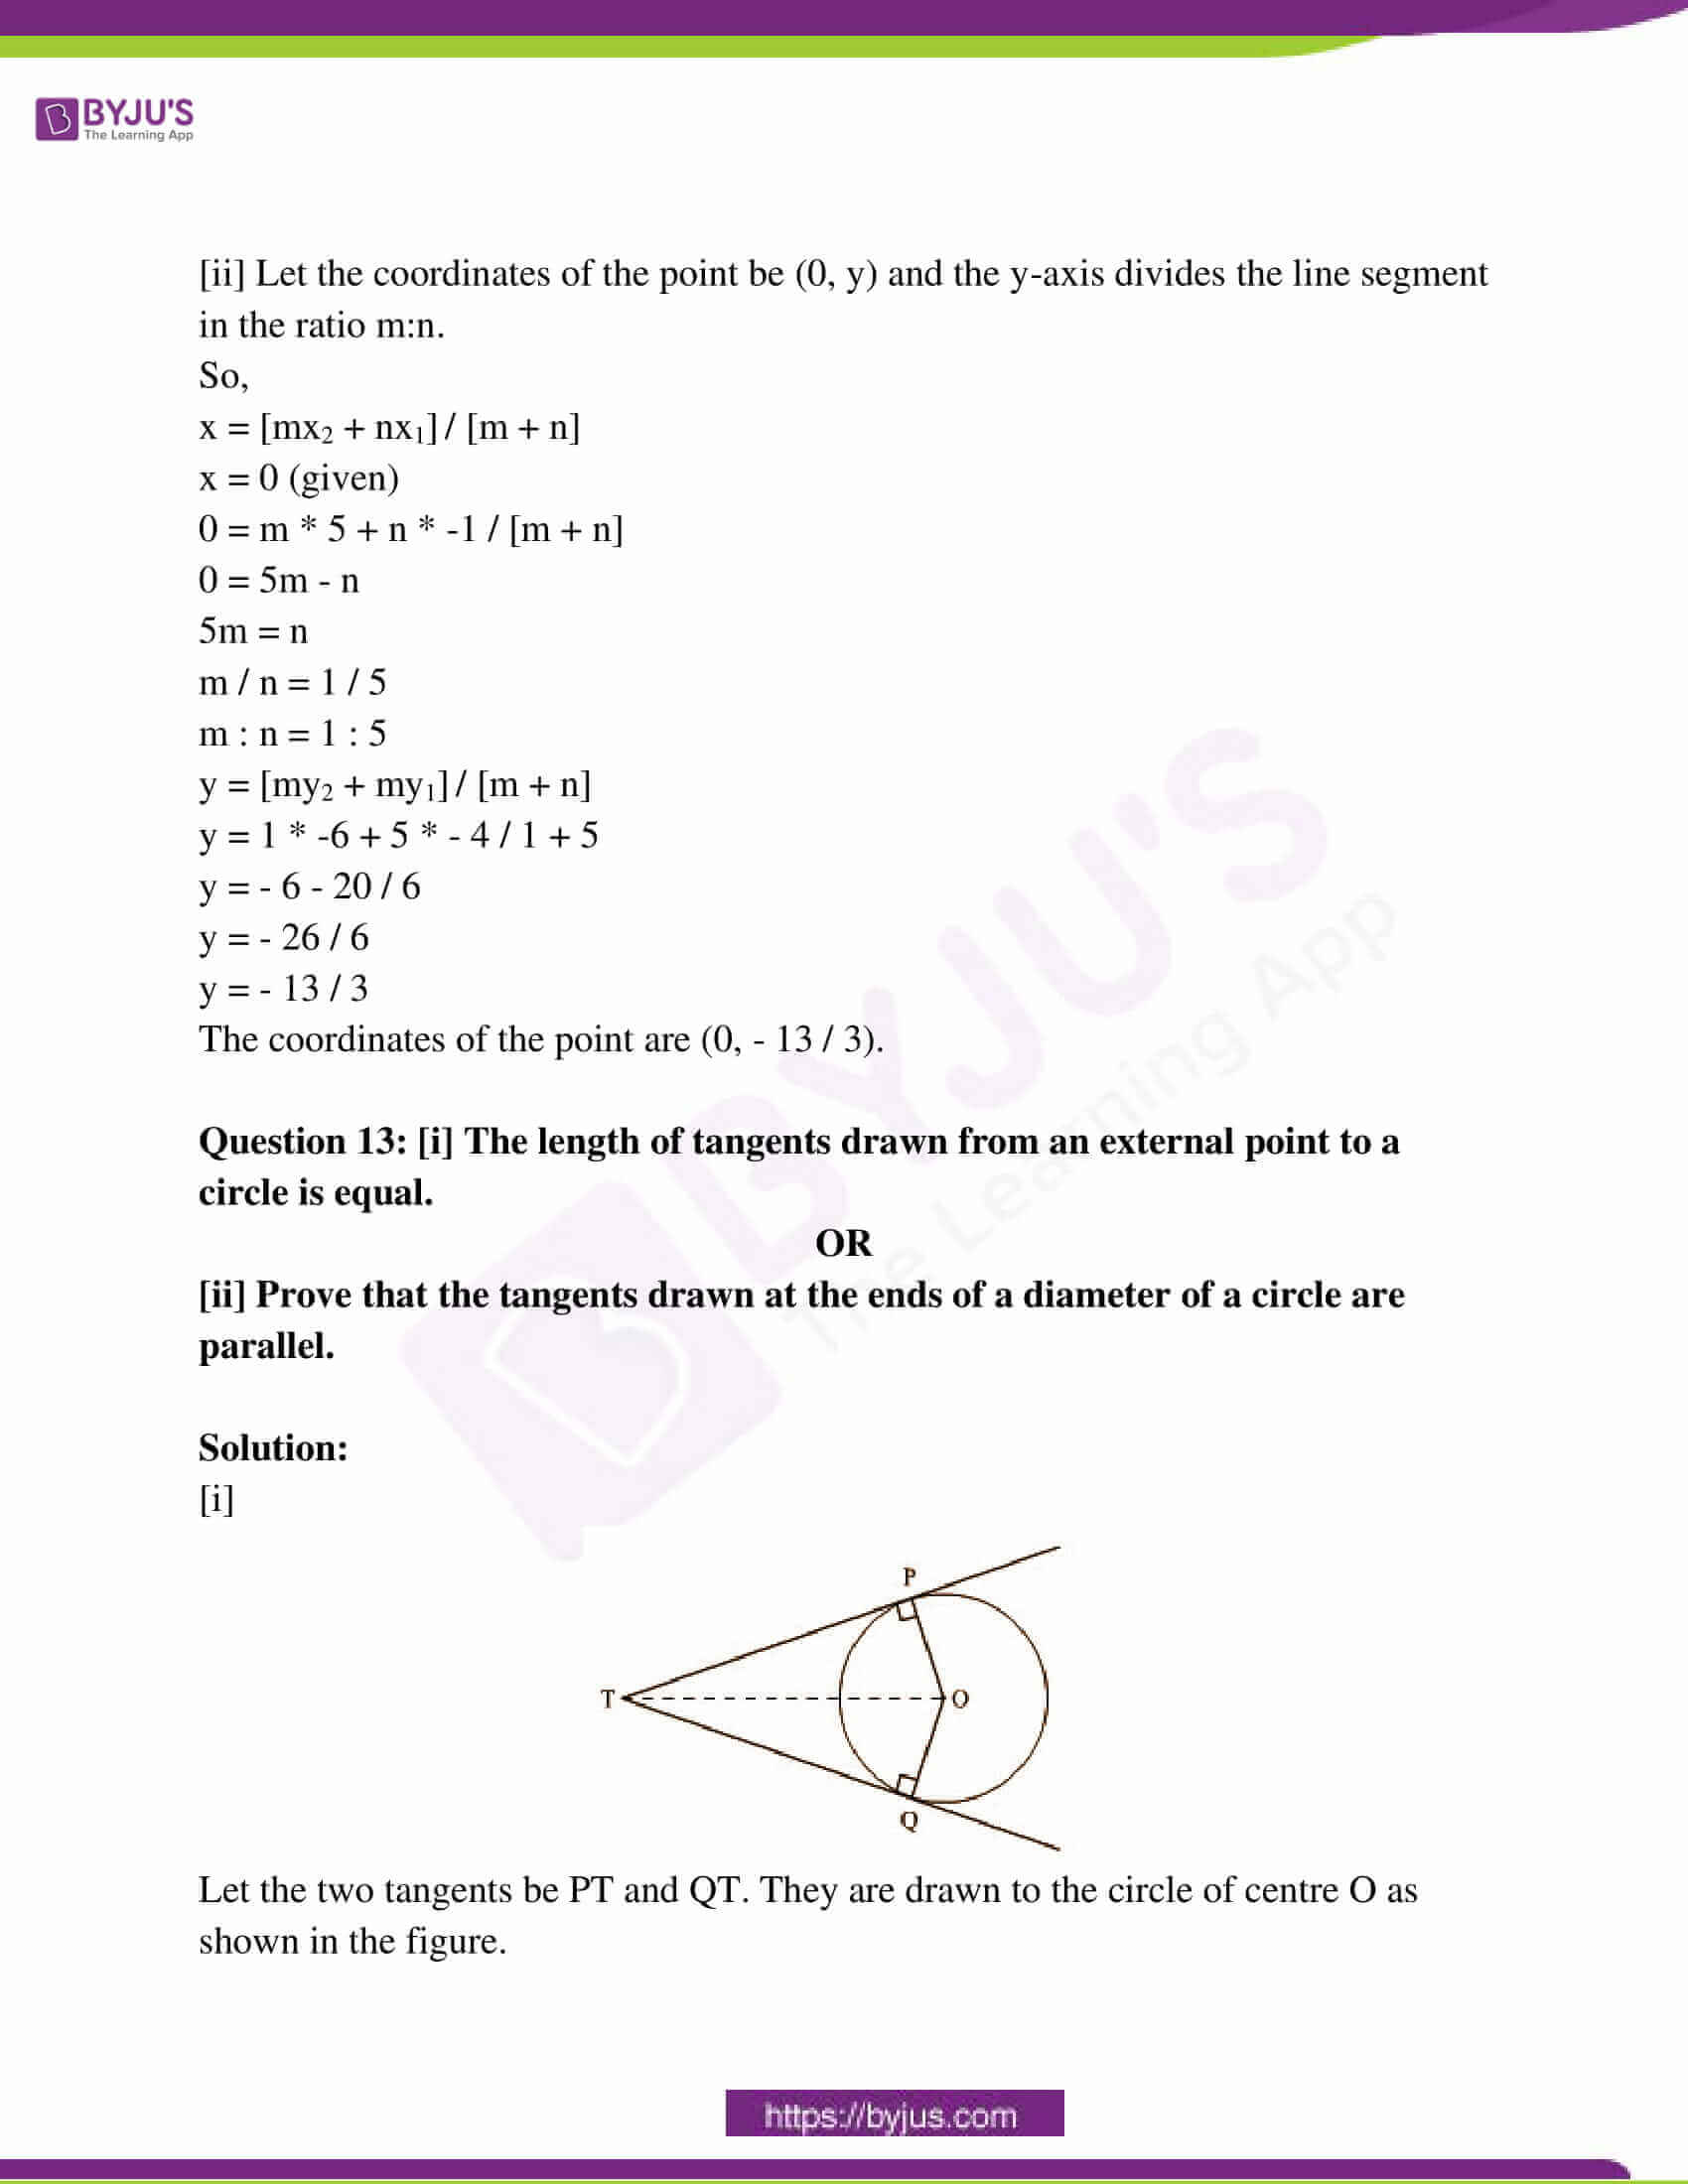 mp class 10 exam question paper with solutions march 2019 09